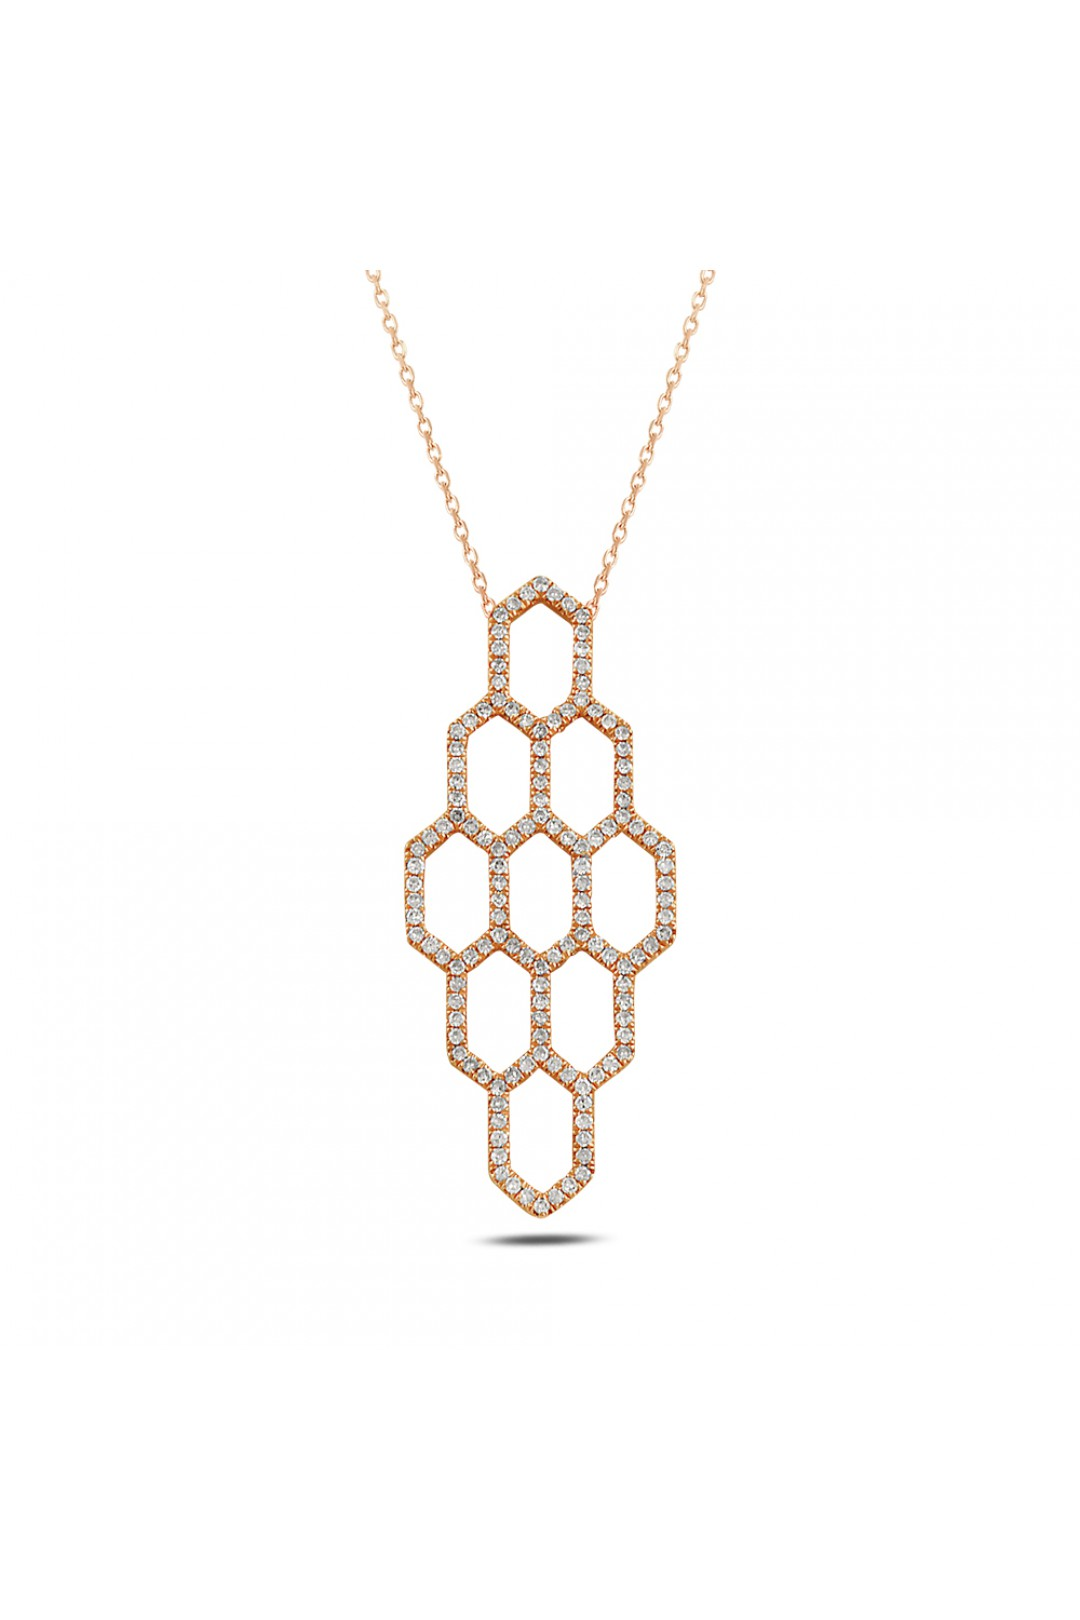 HONEYCOMB DIAMOND NECKLACE